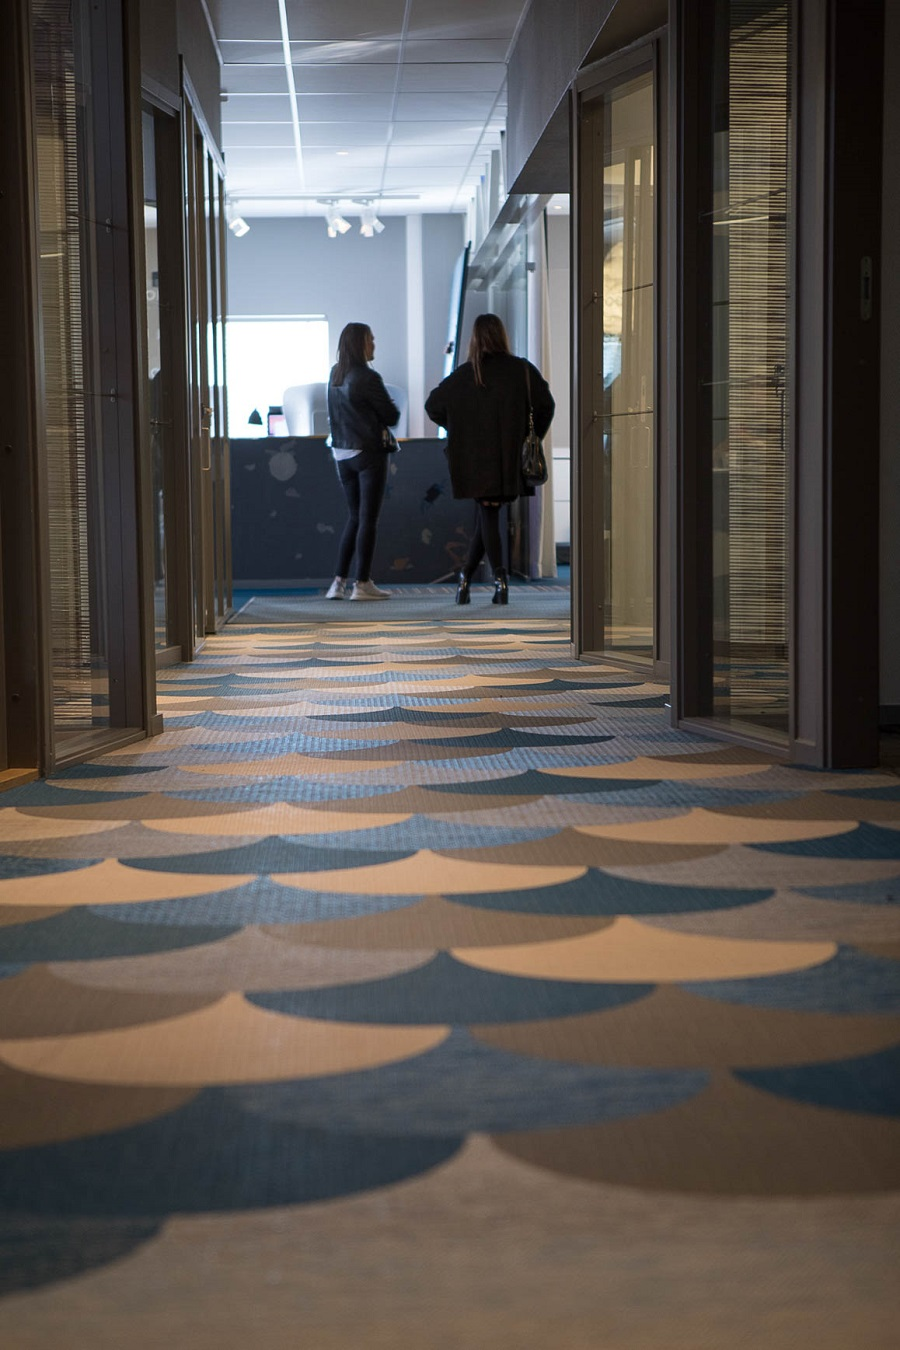 Bolon is a design led and innovative flooring company in West Sweden